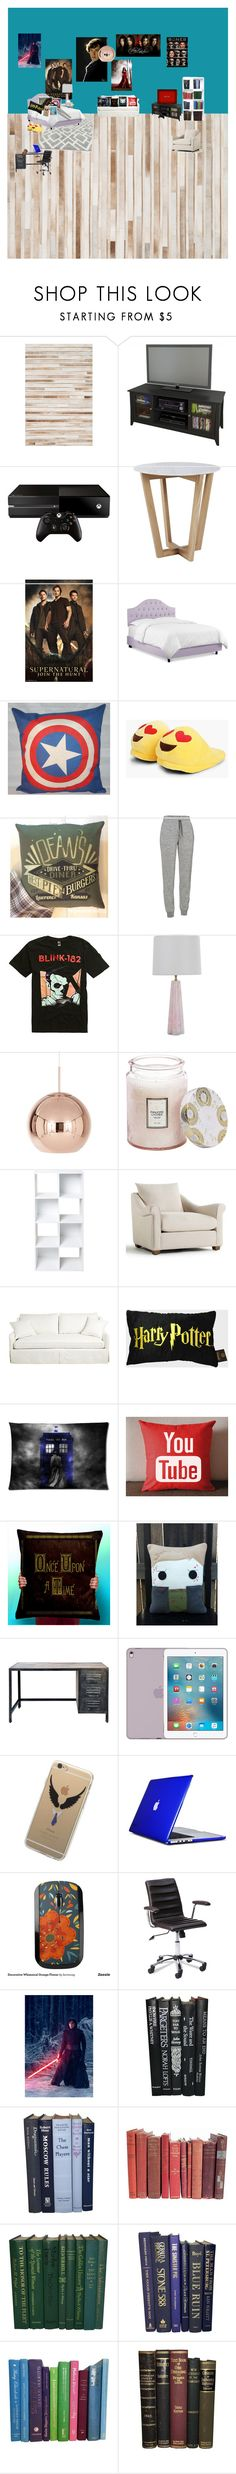 """""""Home sick days"""" by alexandraautidiea9 on Polyvore featuring interior, interiors, interior design, home, home decor, interior decorating, Loloi Rugs, Nexera, Microsoft and Boohoo"""